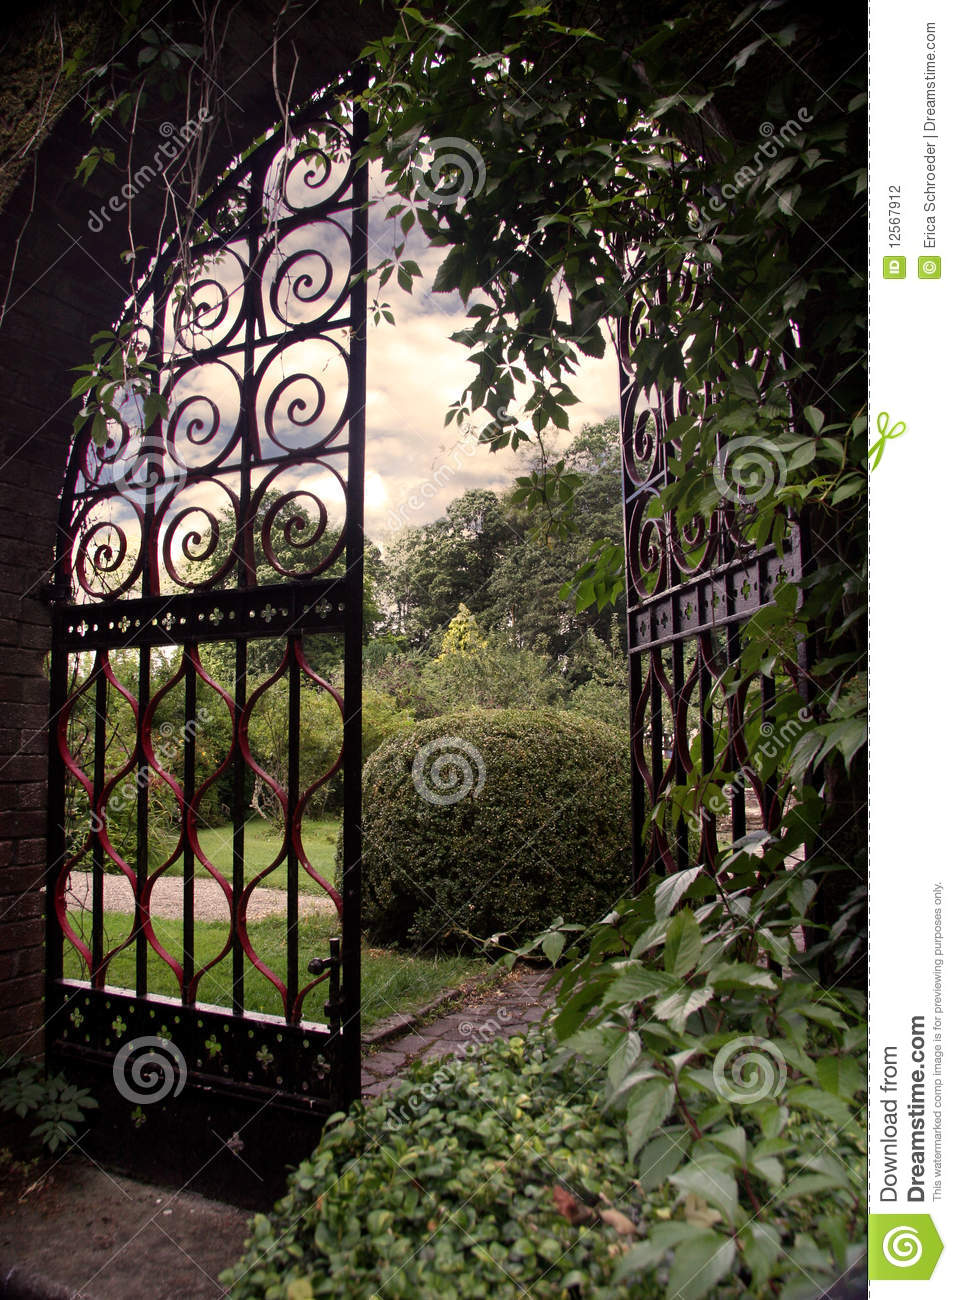 garden with an open gate stock photo  image of entrance